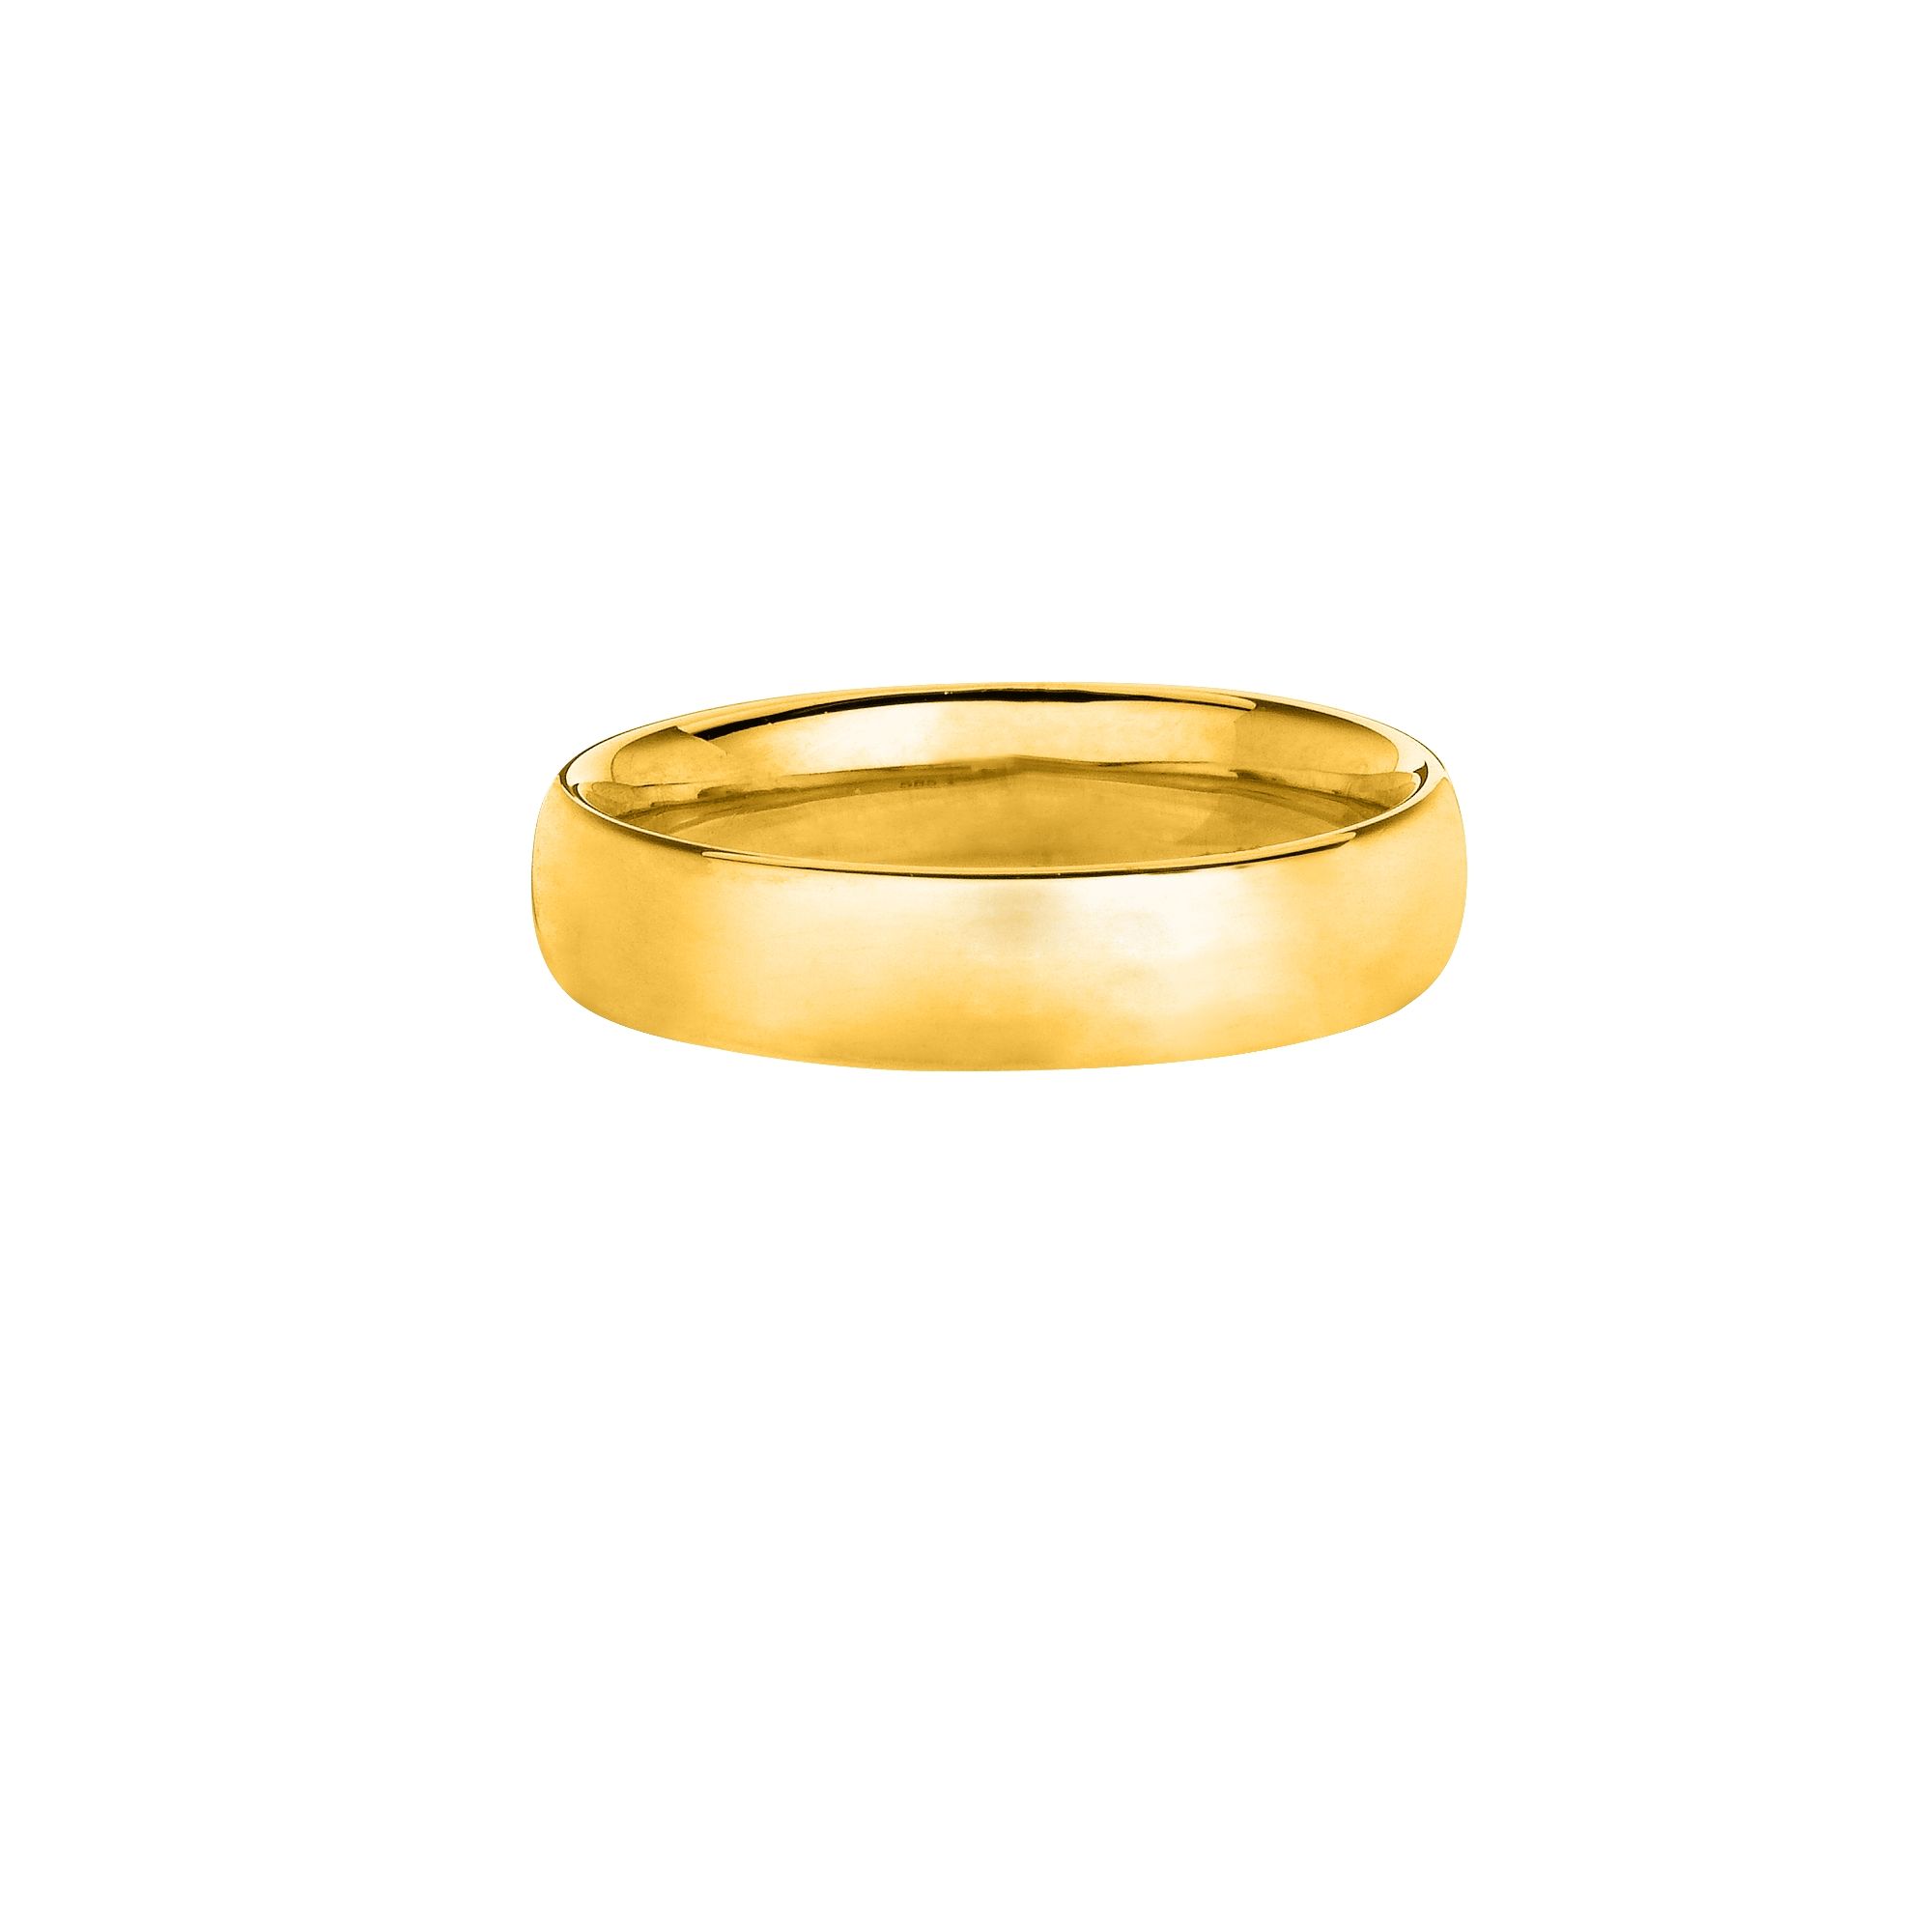 14kt Yellow Gold 4.0mm Shiny Comfort Fit Size 7 Wedding Band